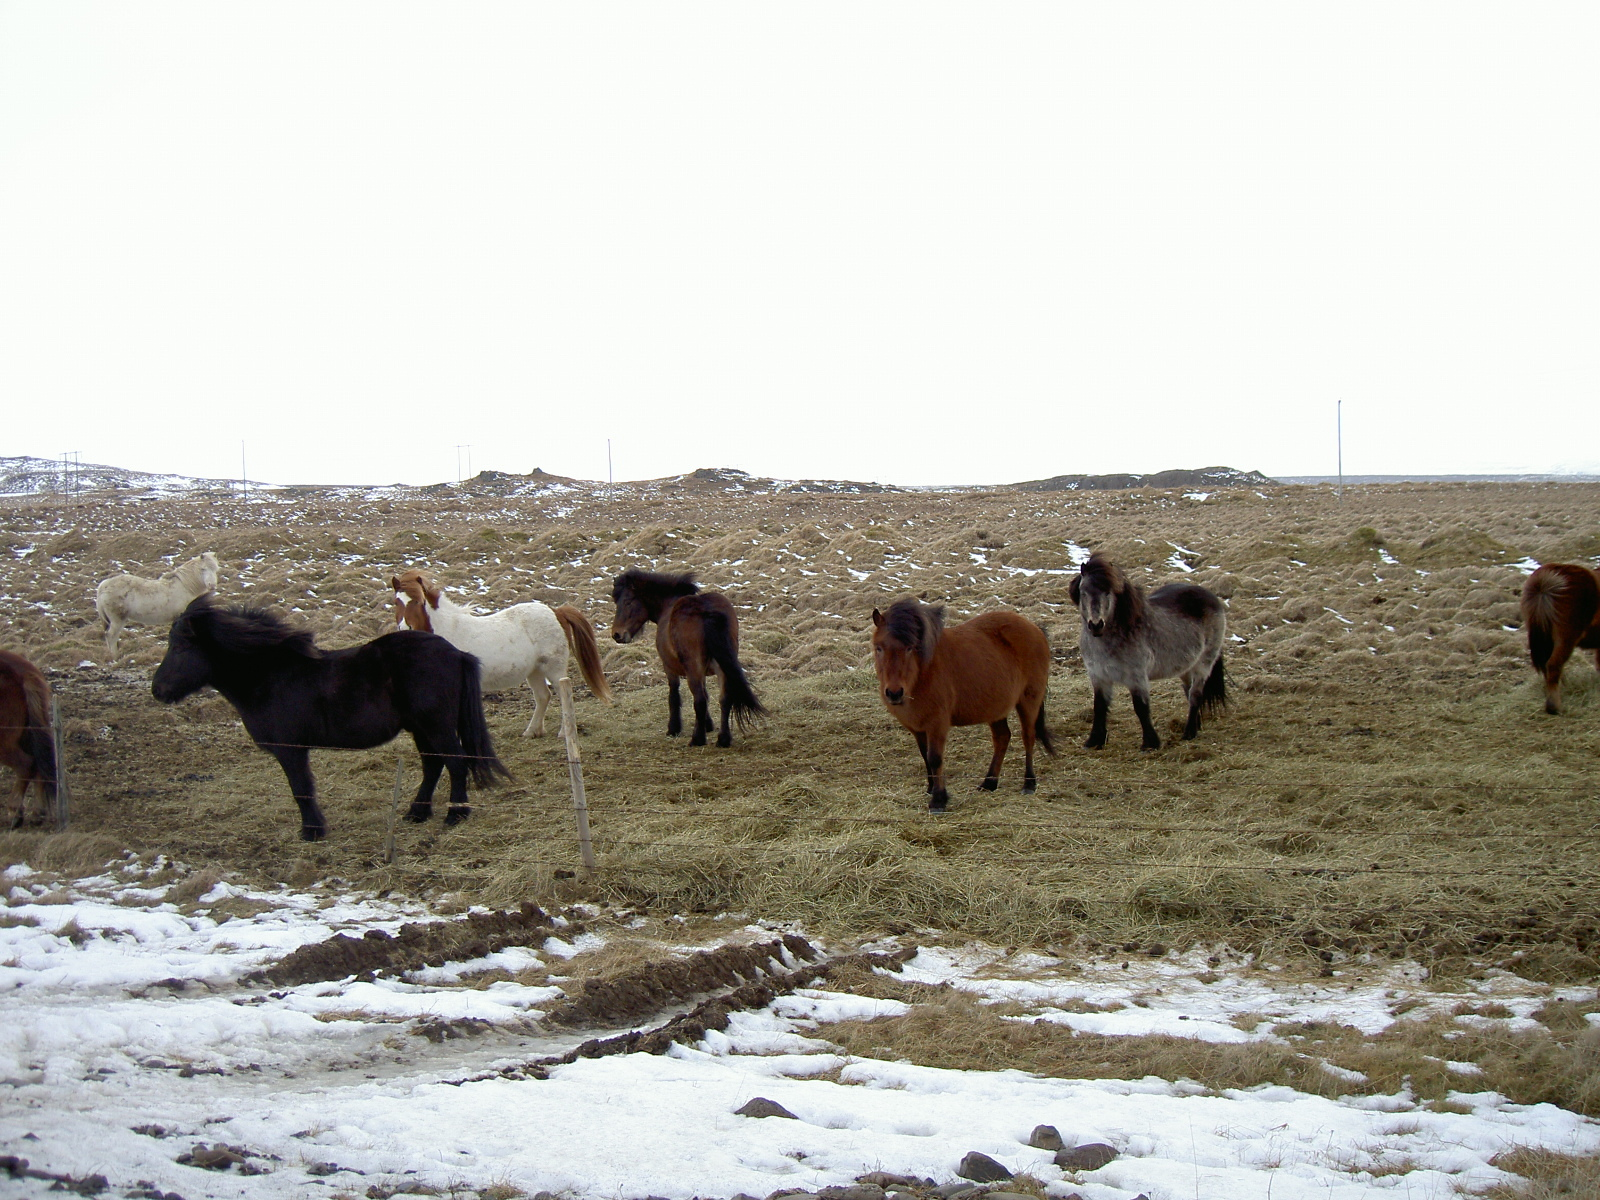 Icelandic horses (purpose of page is to display an image)